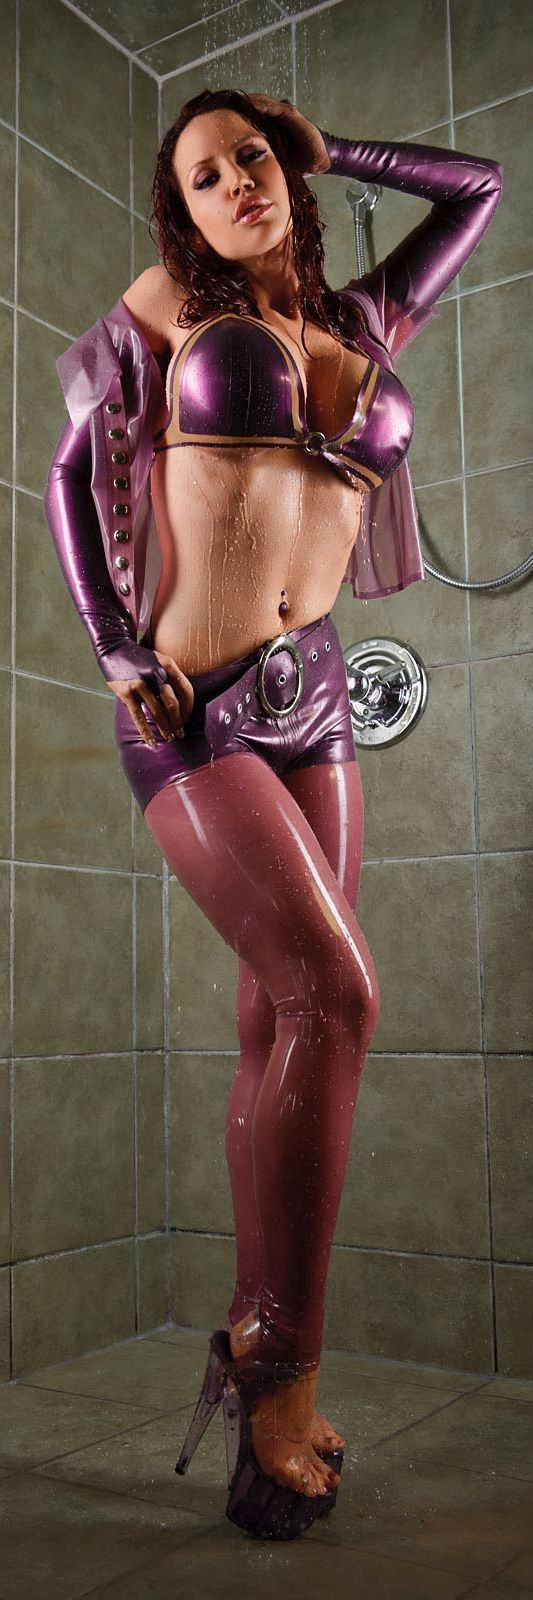 Bianca Beauchamp pink and purple latex in the shower